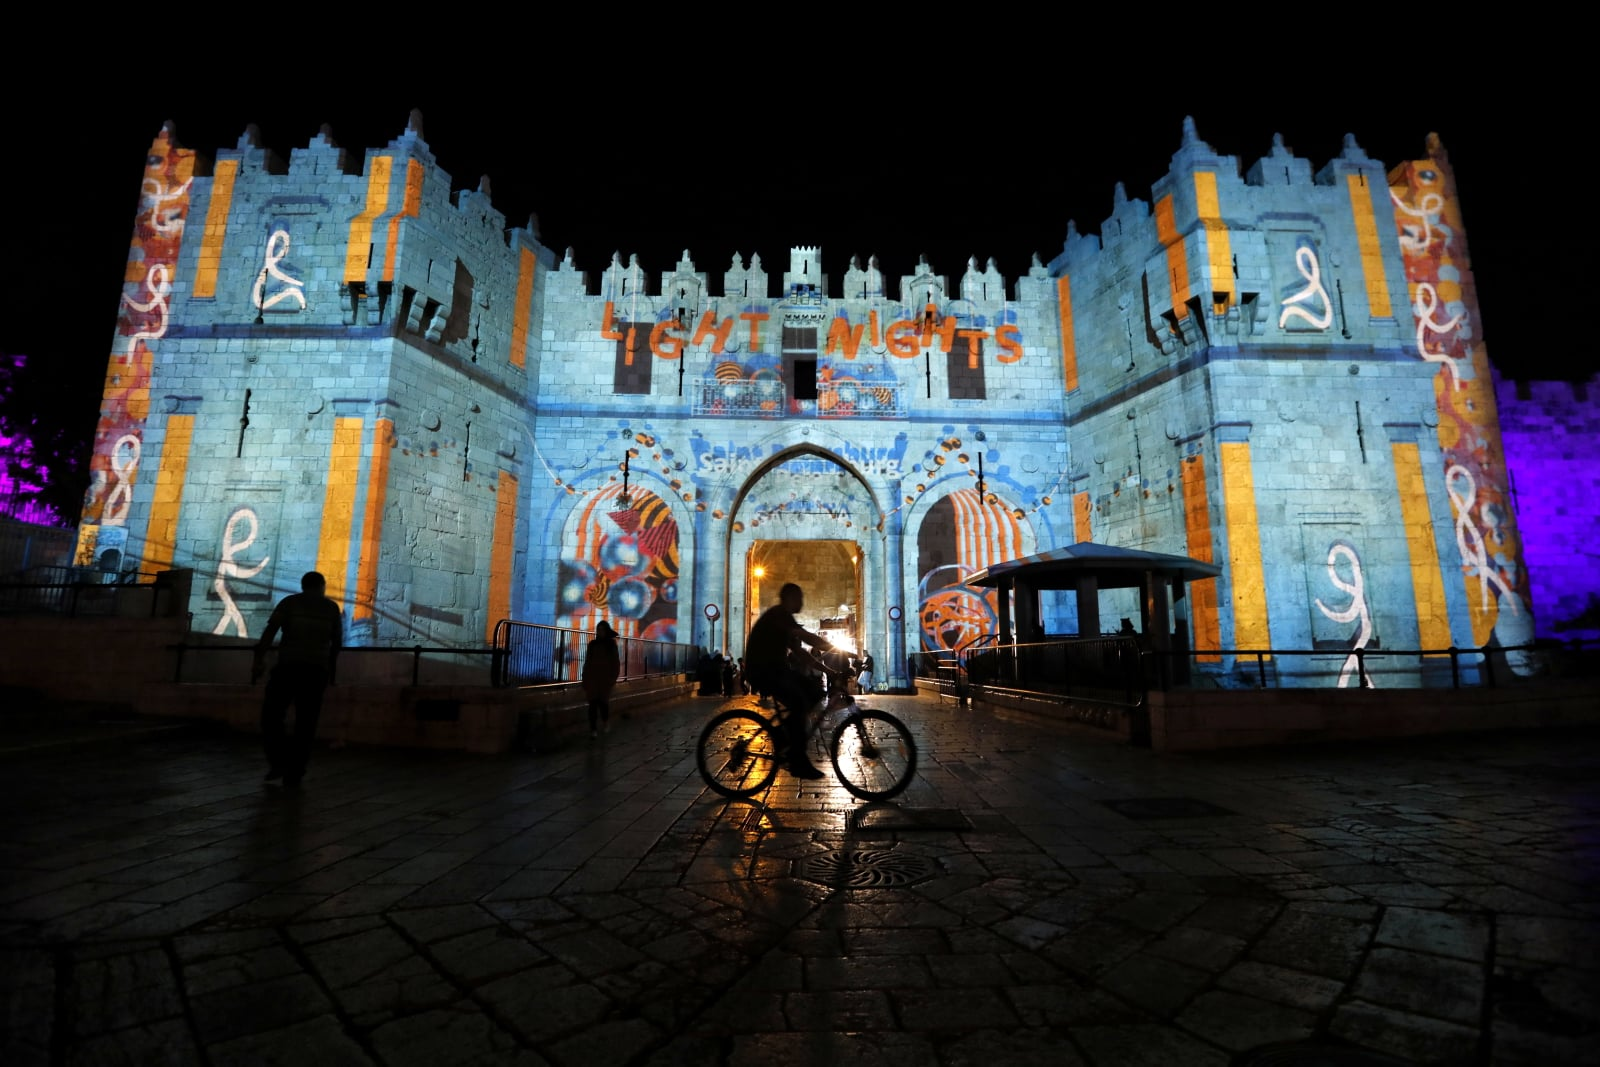 epa06856276 A view of a light projection show on Damascus Gate during the Jerusalem Lights Festival, in the Old City of Jerusalem, 01 July 2018. The festival, hosting Israeli and international artists runs for a week from June 27 to July 05.  EPA/ABIR SULTAN  Dostawca: PAP/EPA.